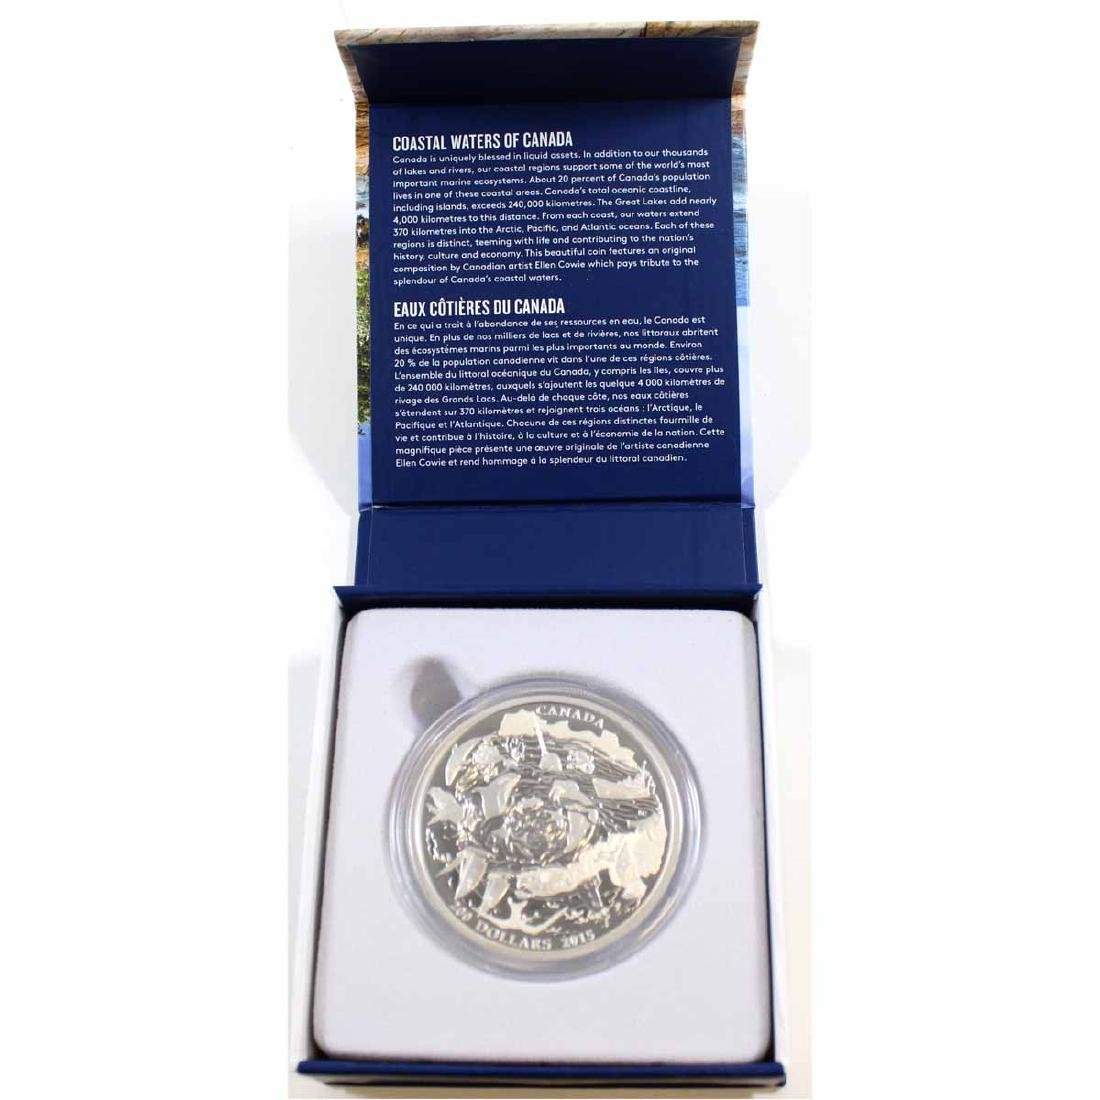 2015 Canada $200 Coastal Waters 2oz $200 for $200 Fine